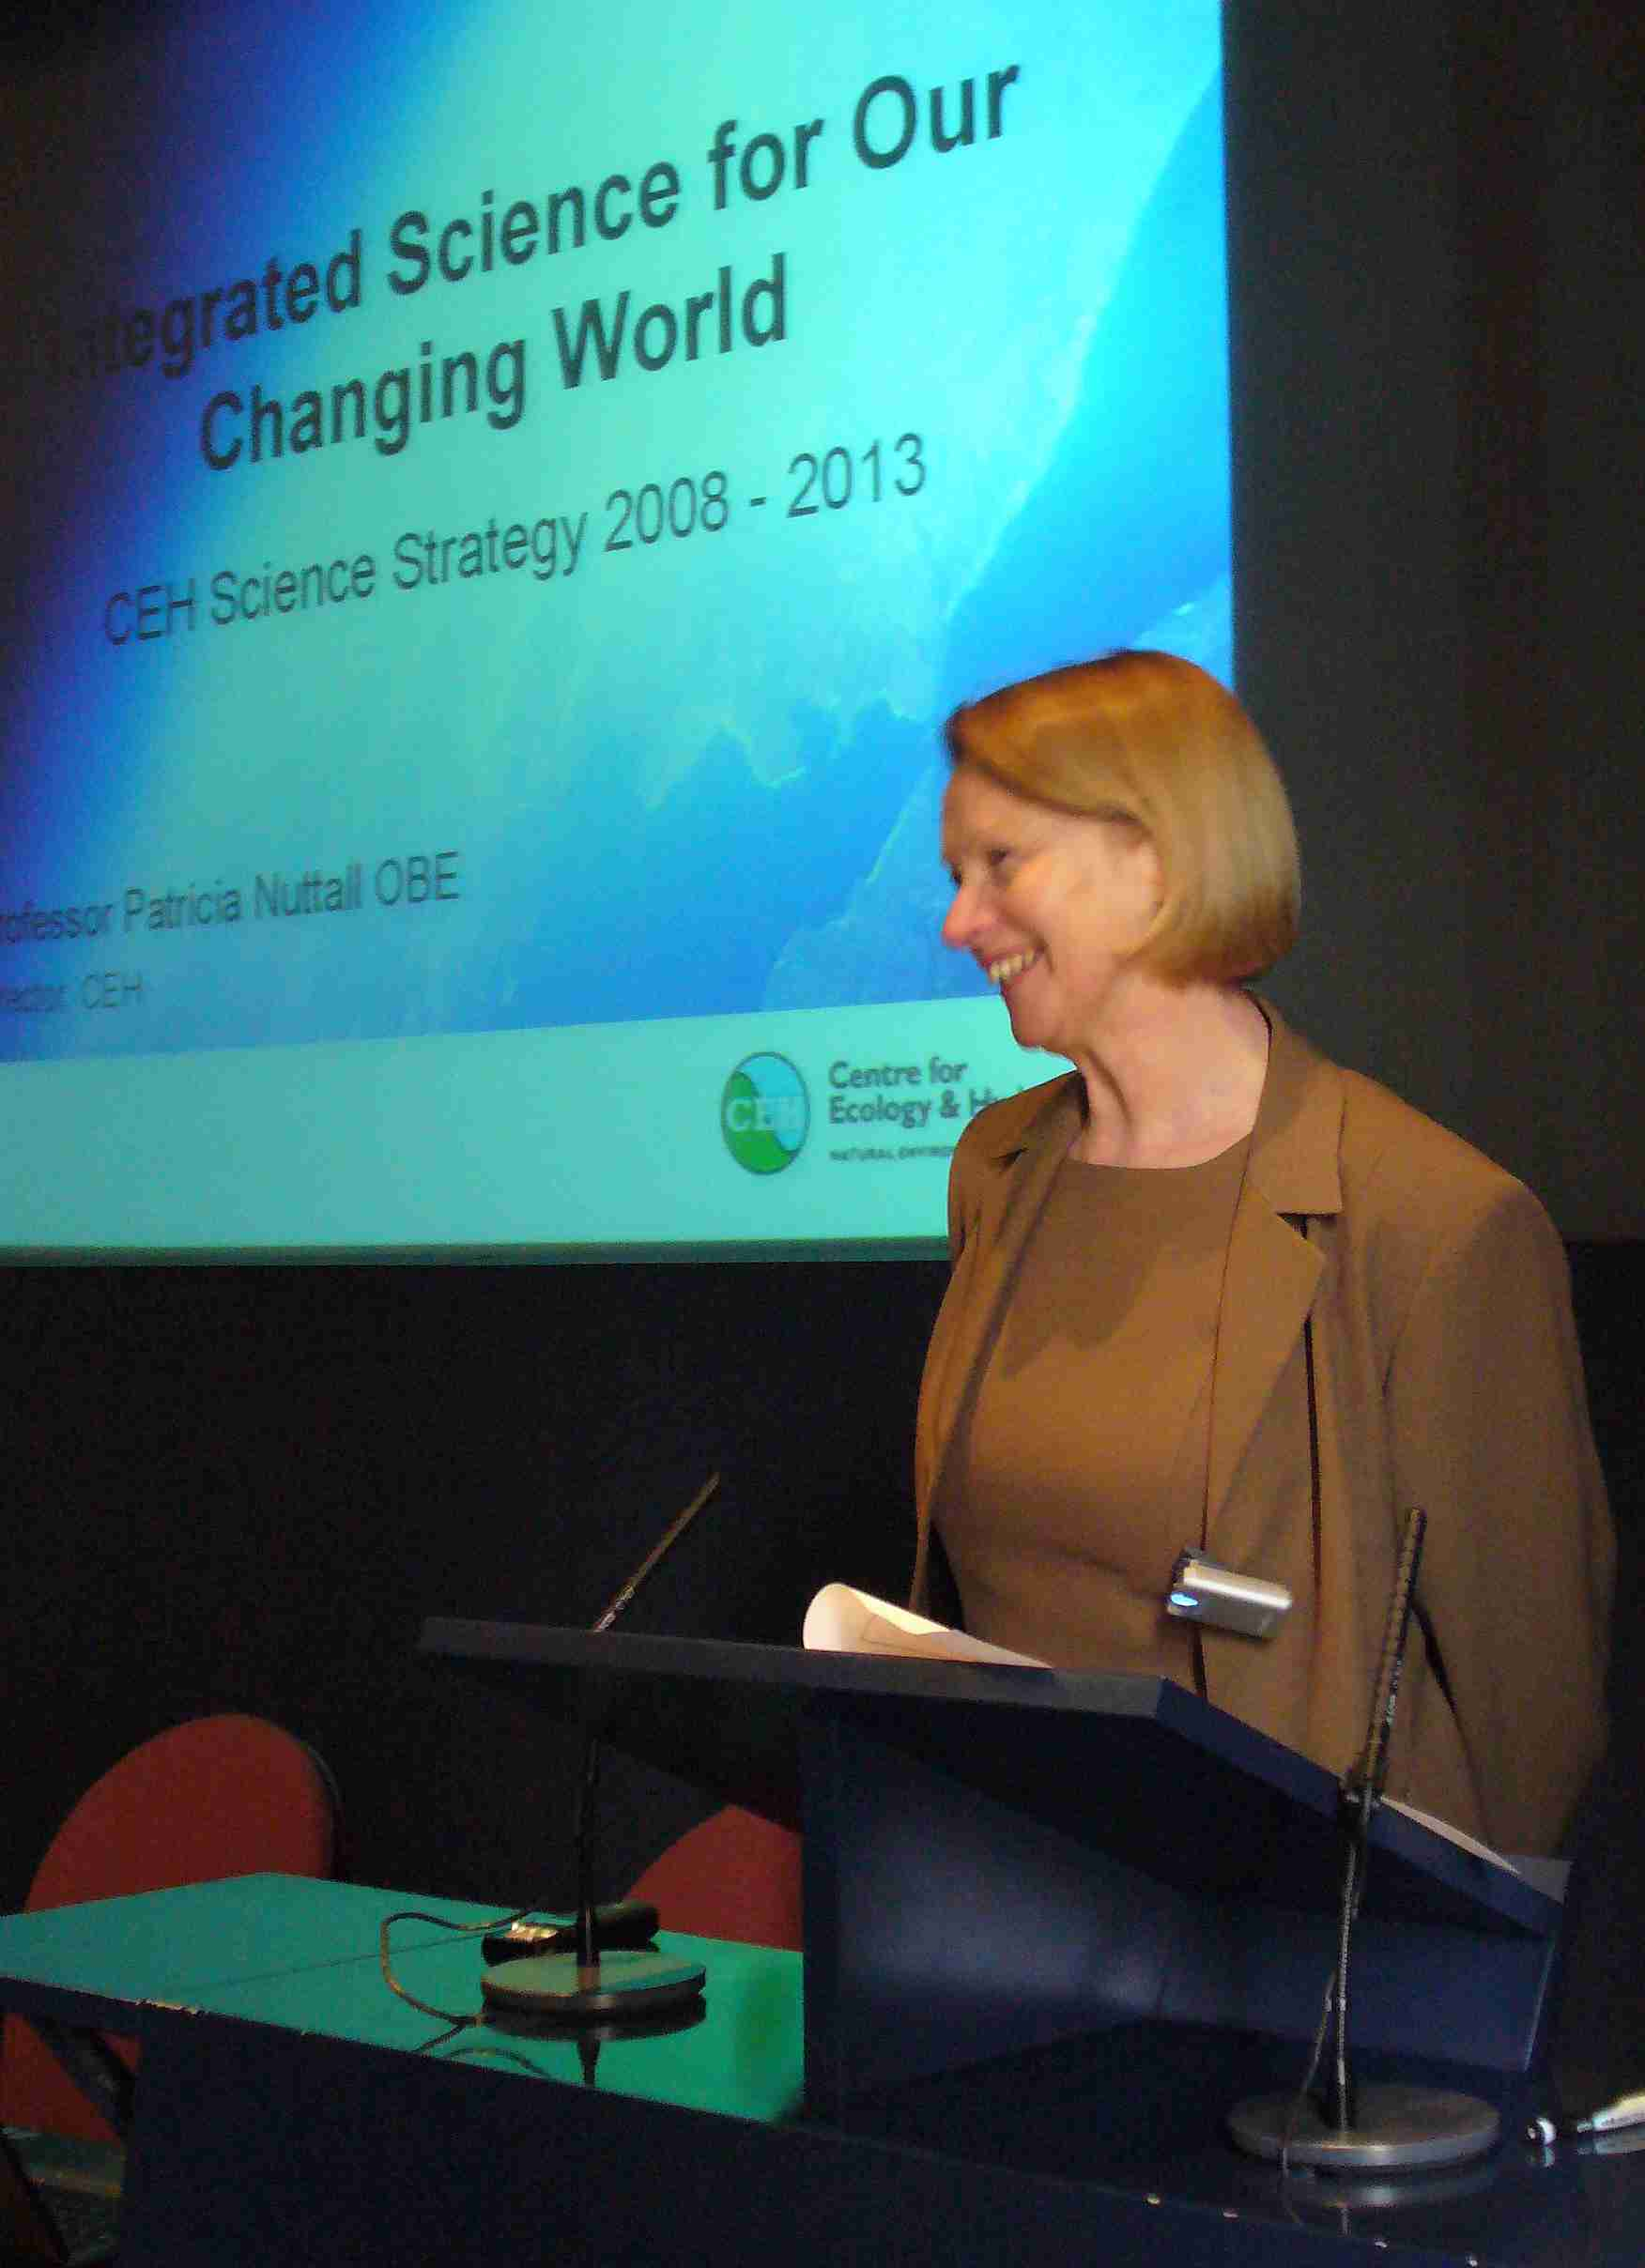 Prof. Pat Nuttall introduces the Science Strategy